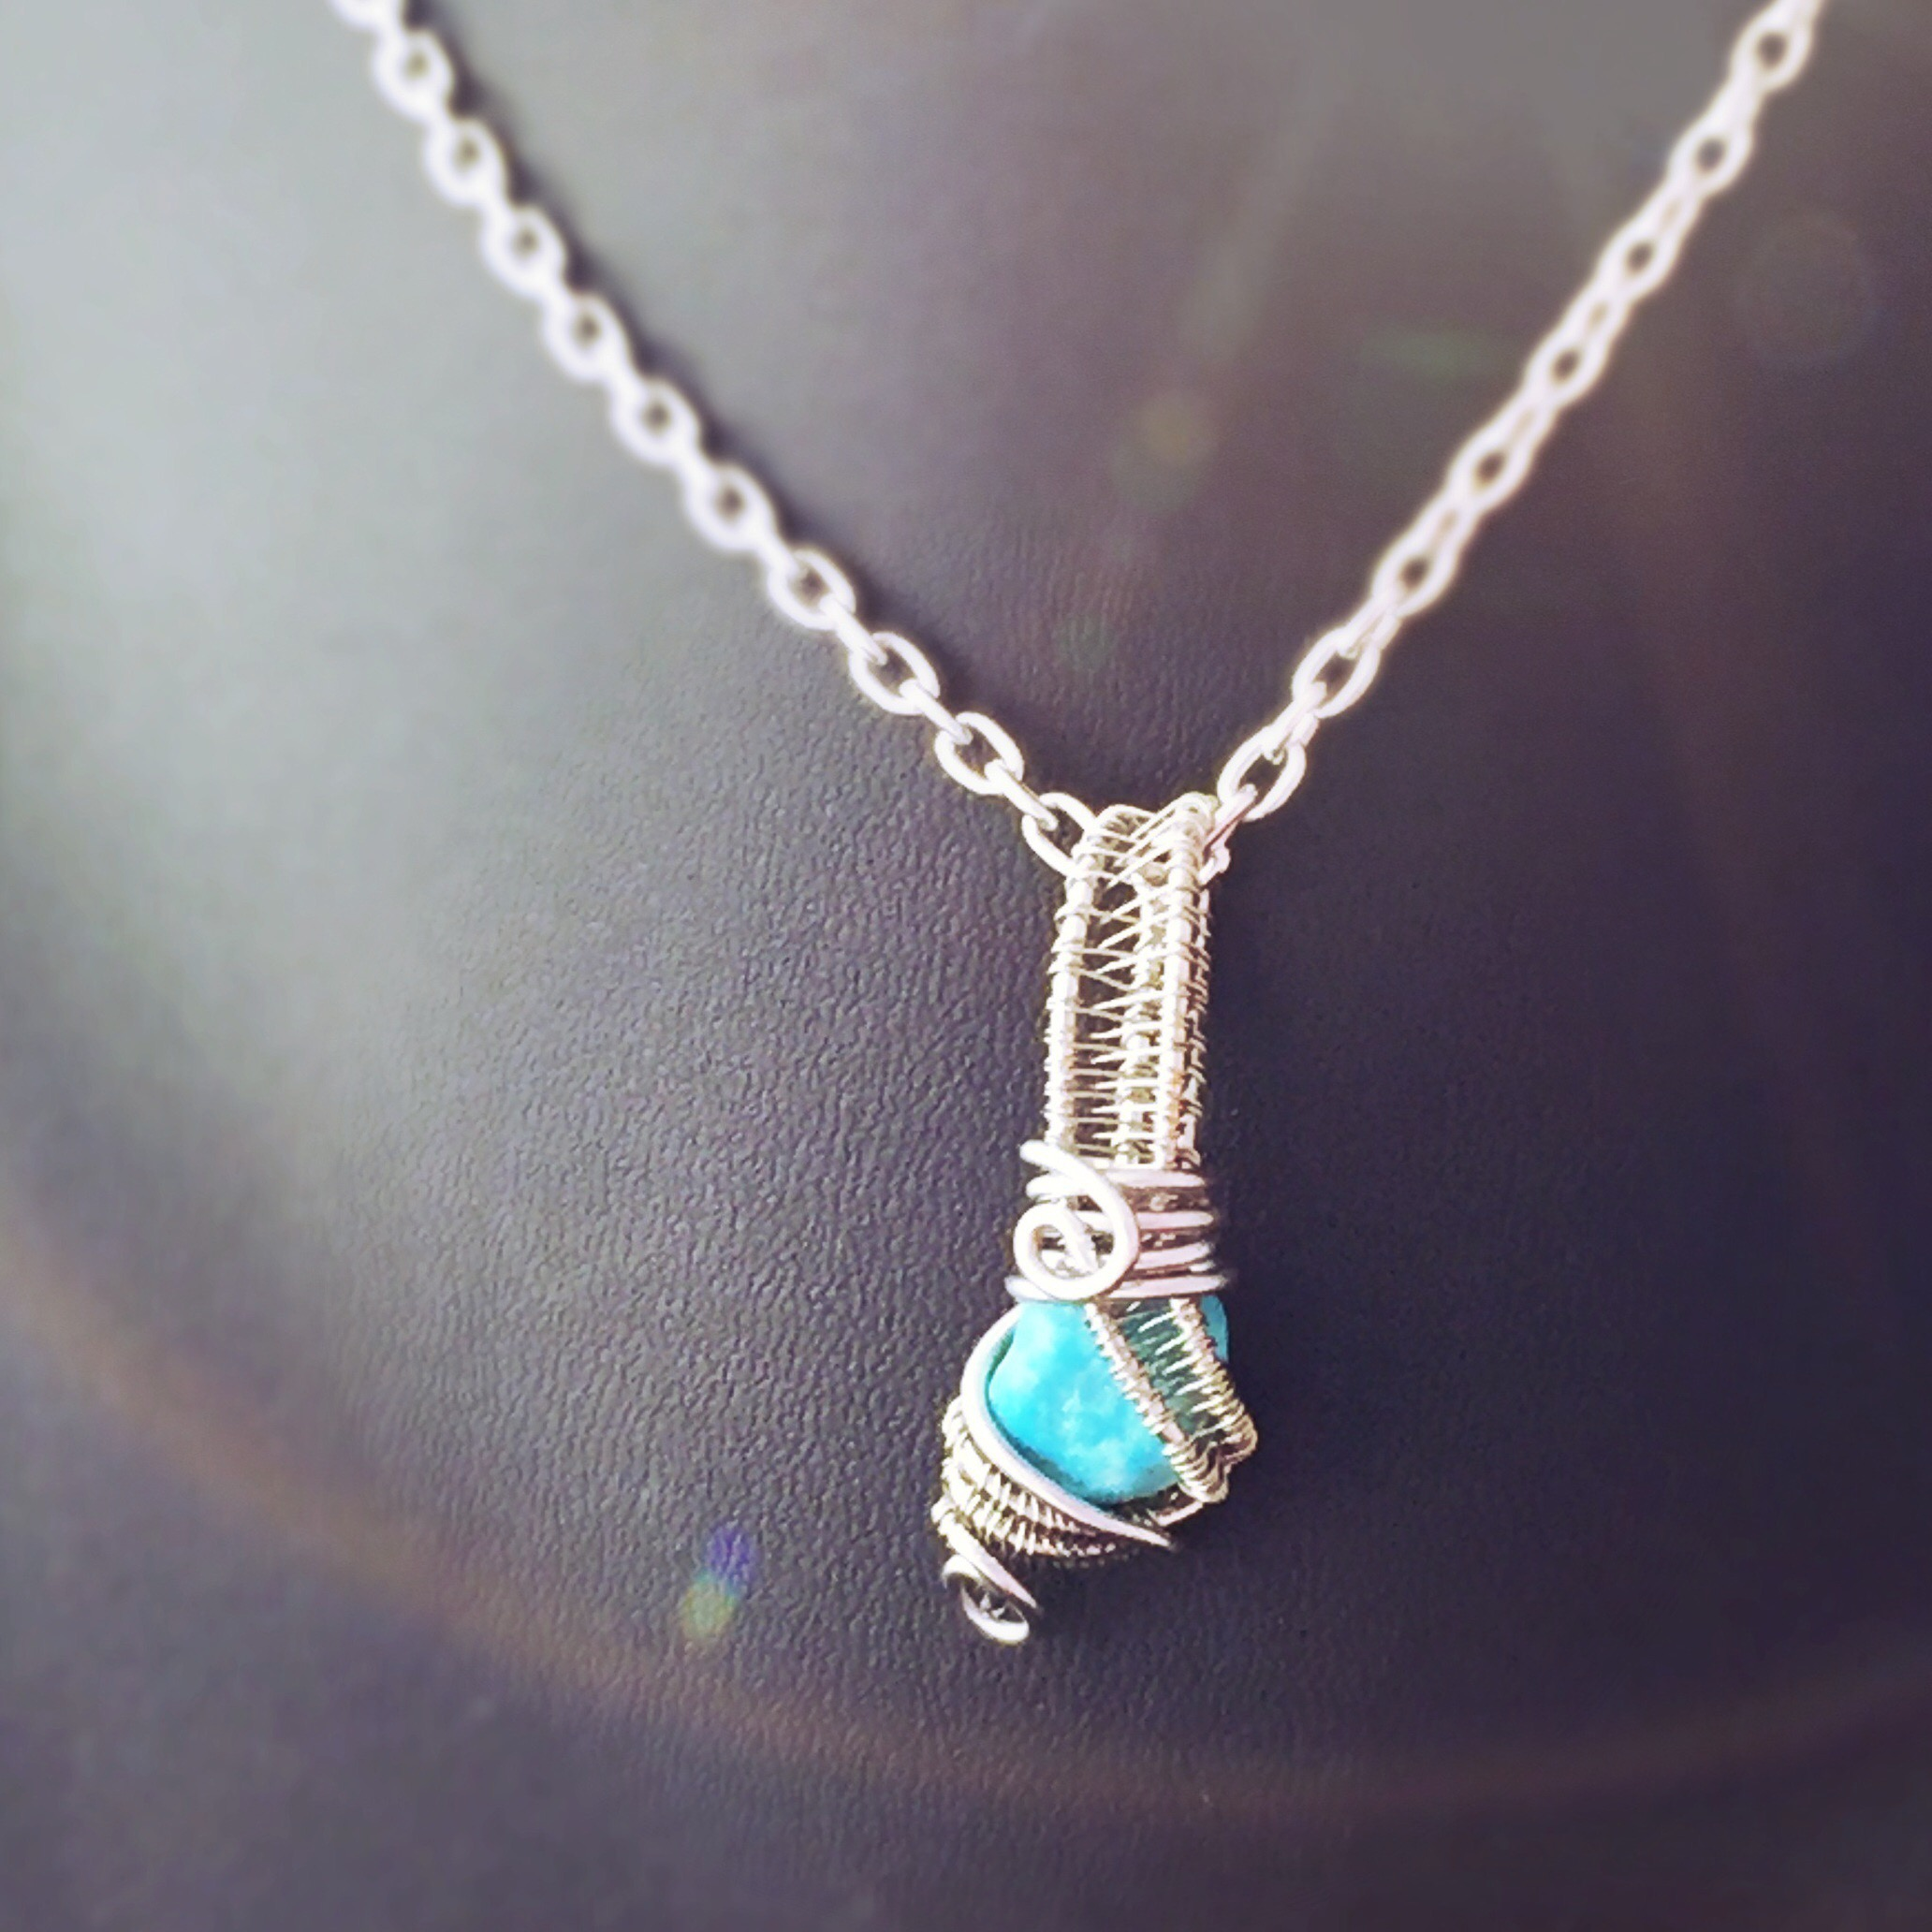 Hey Sag! You need to snag this Turquoise while it's still available! Check it out here!